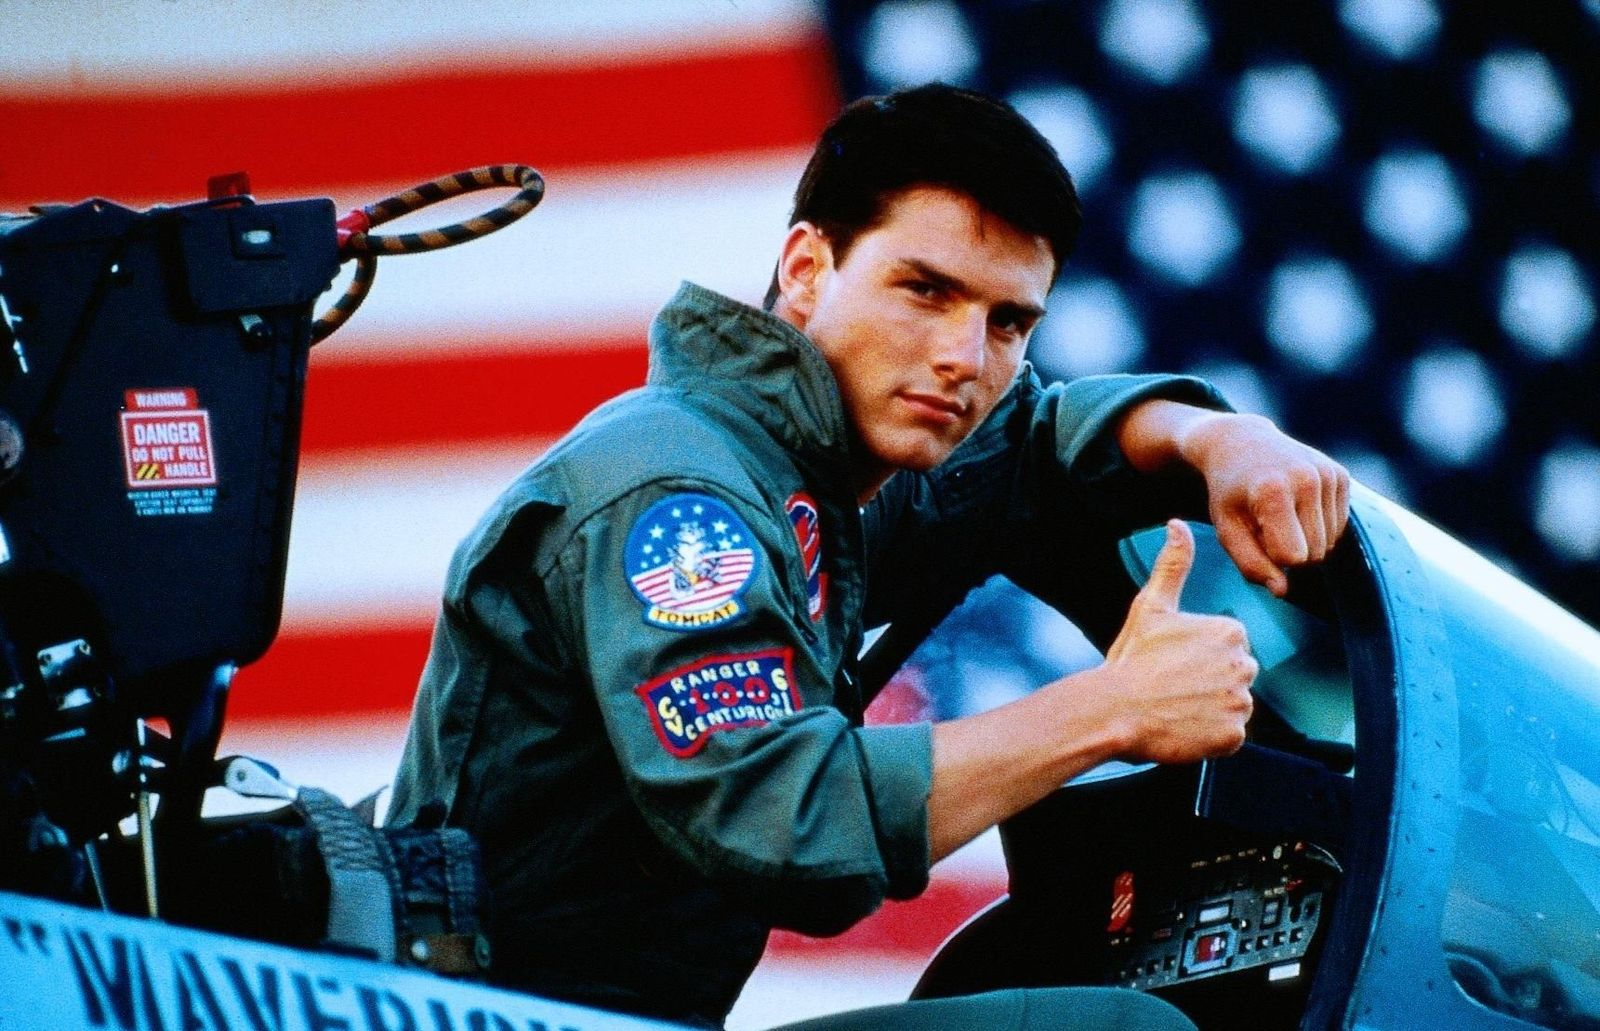 Sexsymbole der 80er / Top Gun / Tom Cruise